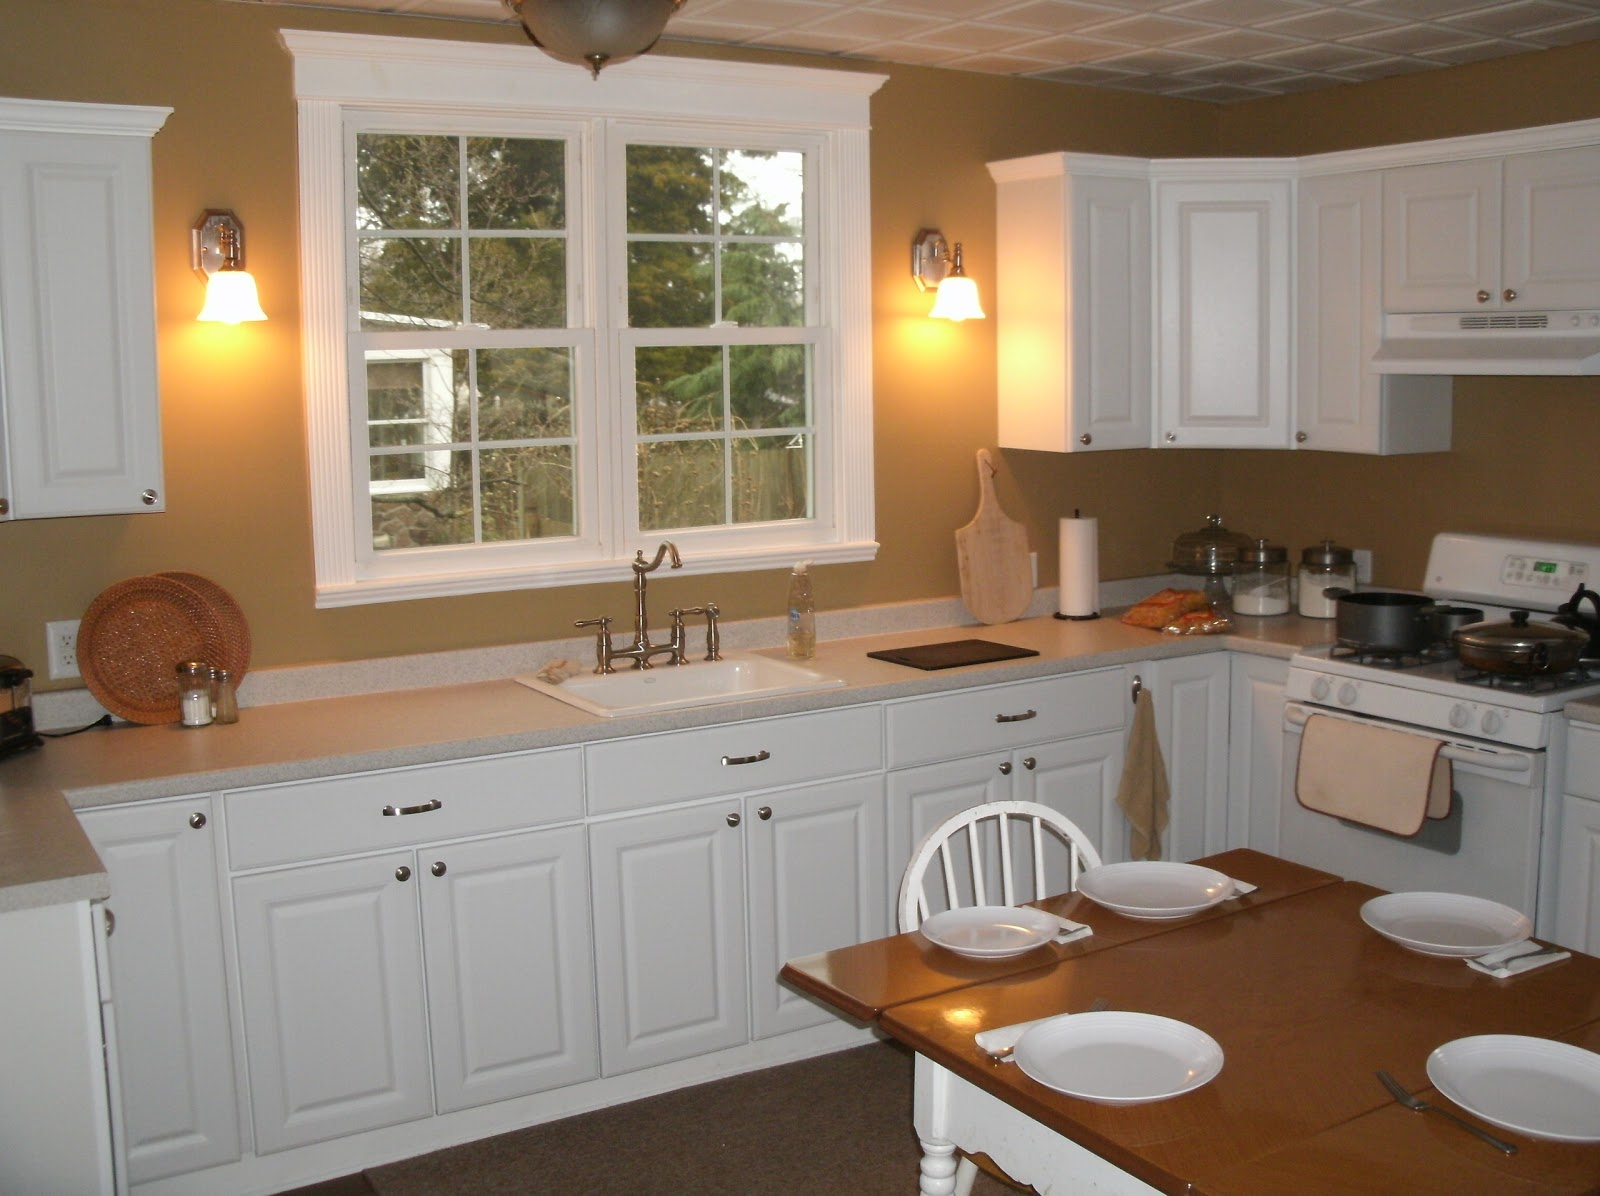 Home remodeling and improvements tips and how to 39 s for Remodeling your kitchen ideas